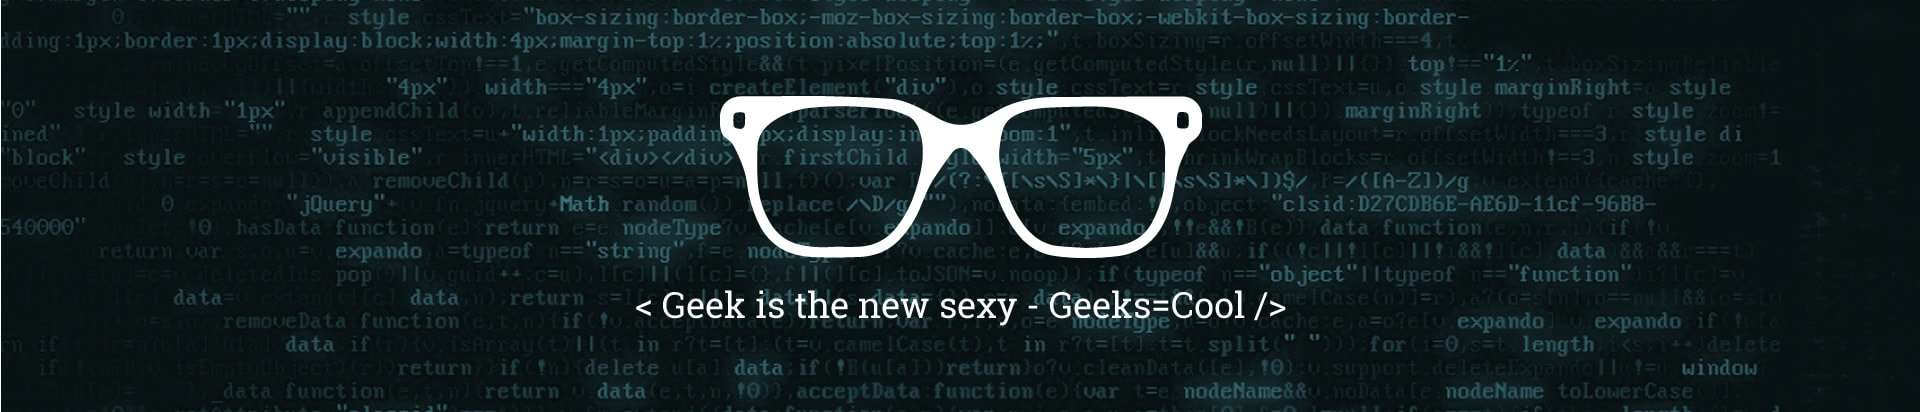 Geek is cool